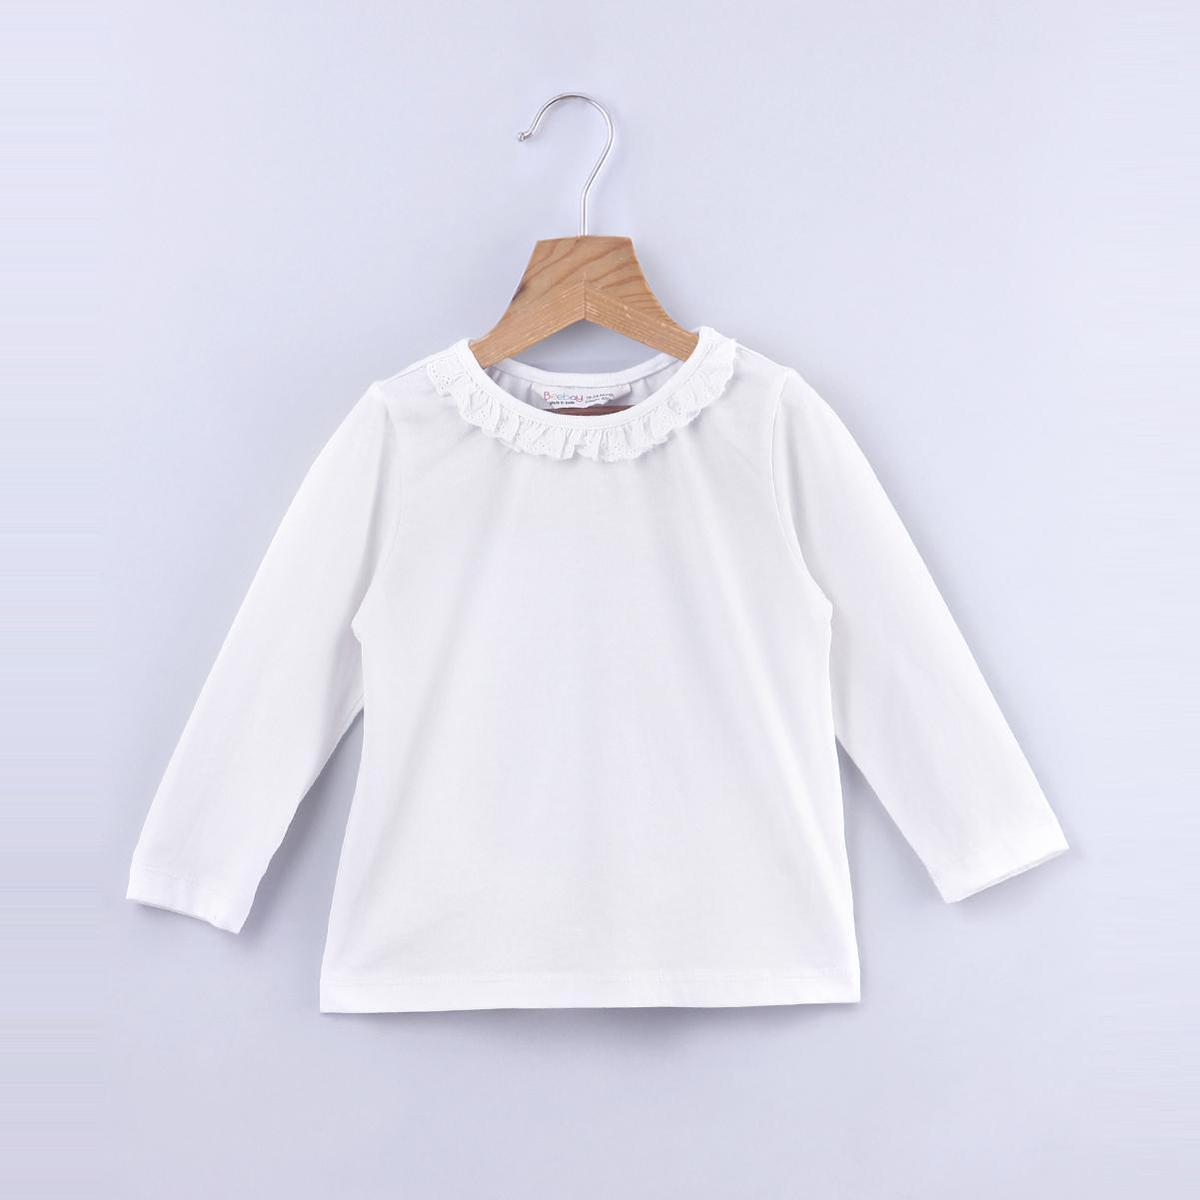 Beebay - Off White Colored Lace Frill Neck Cotton Top For Kids Girls